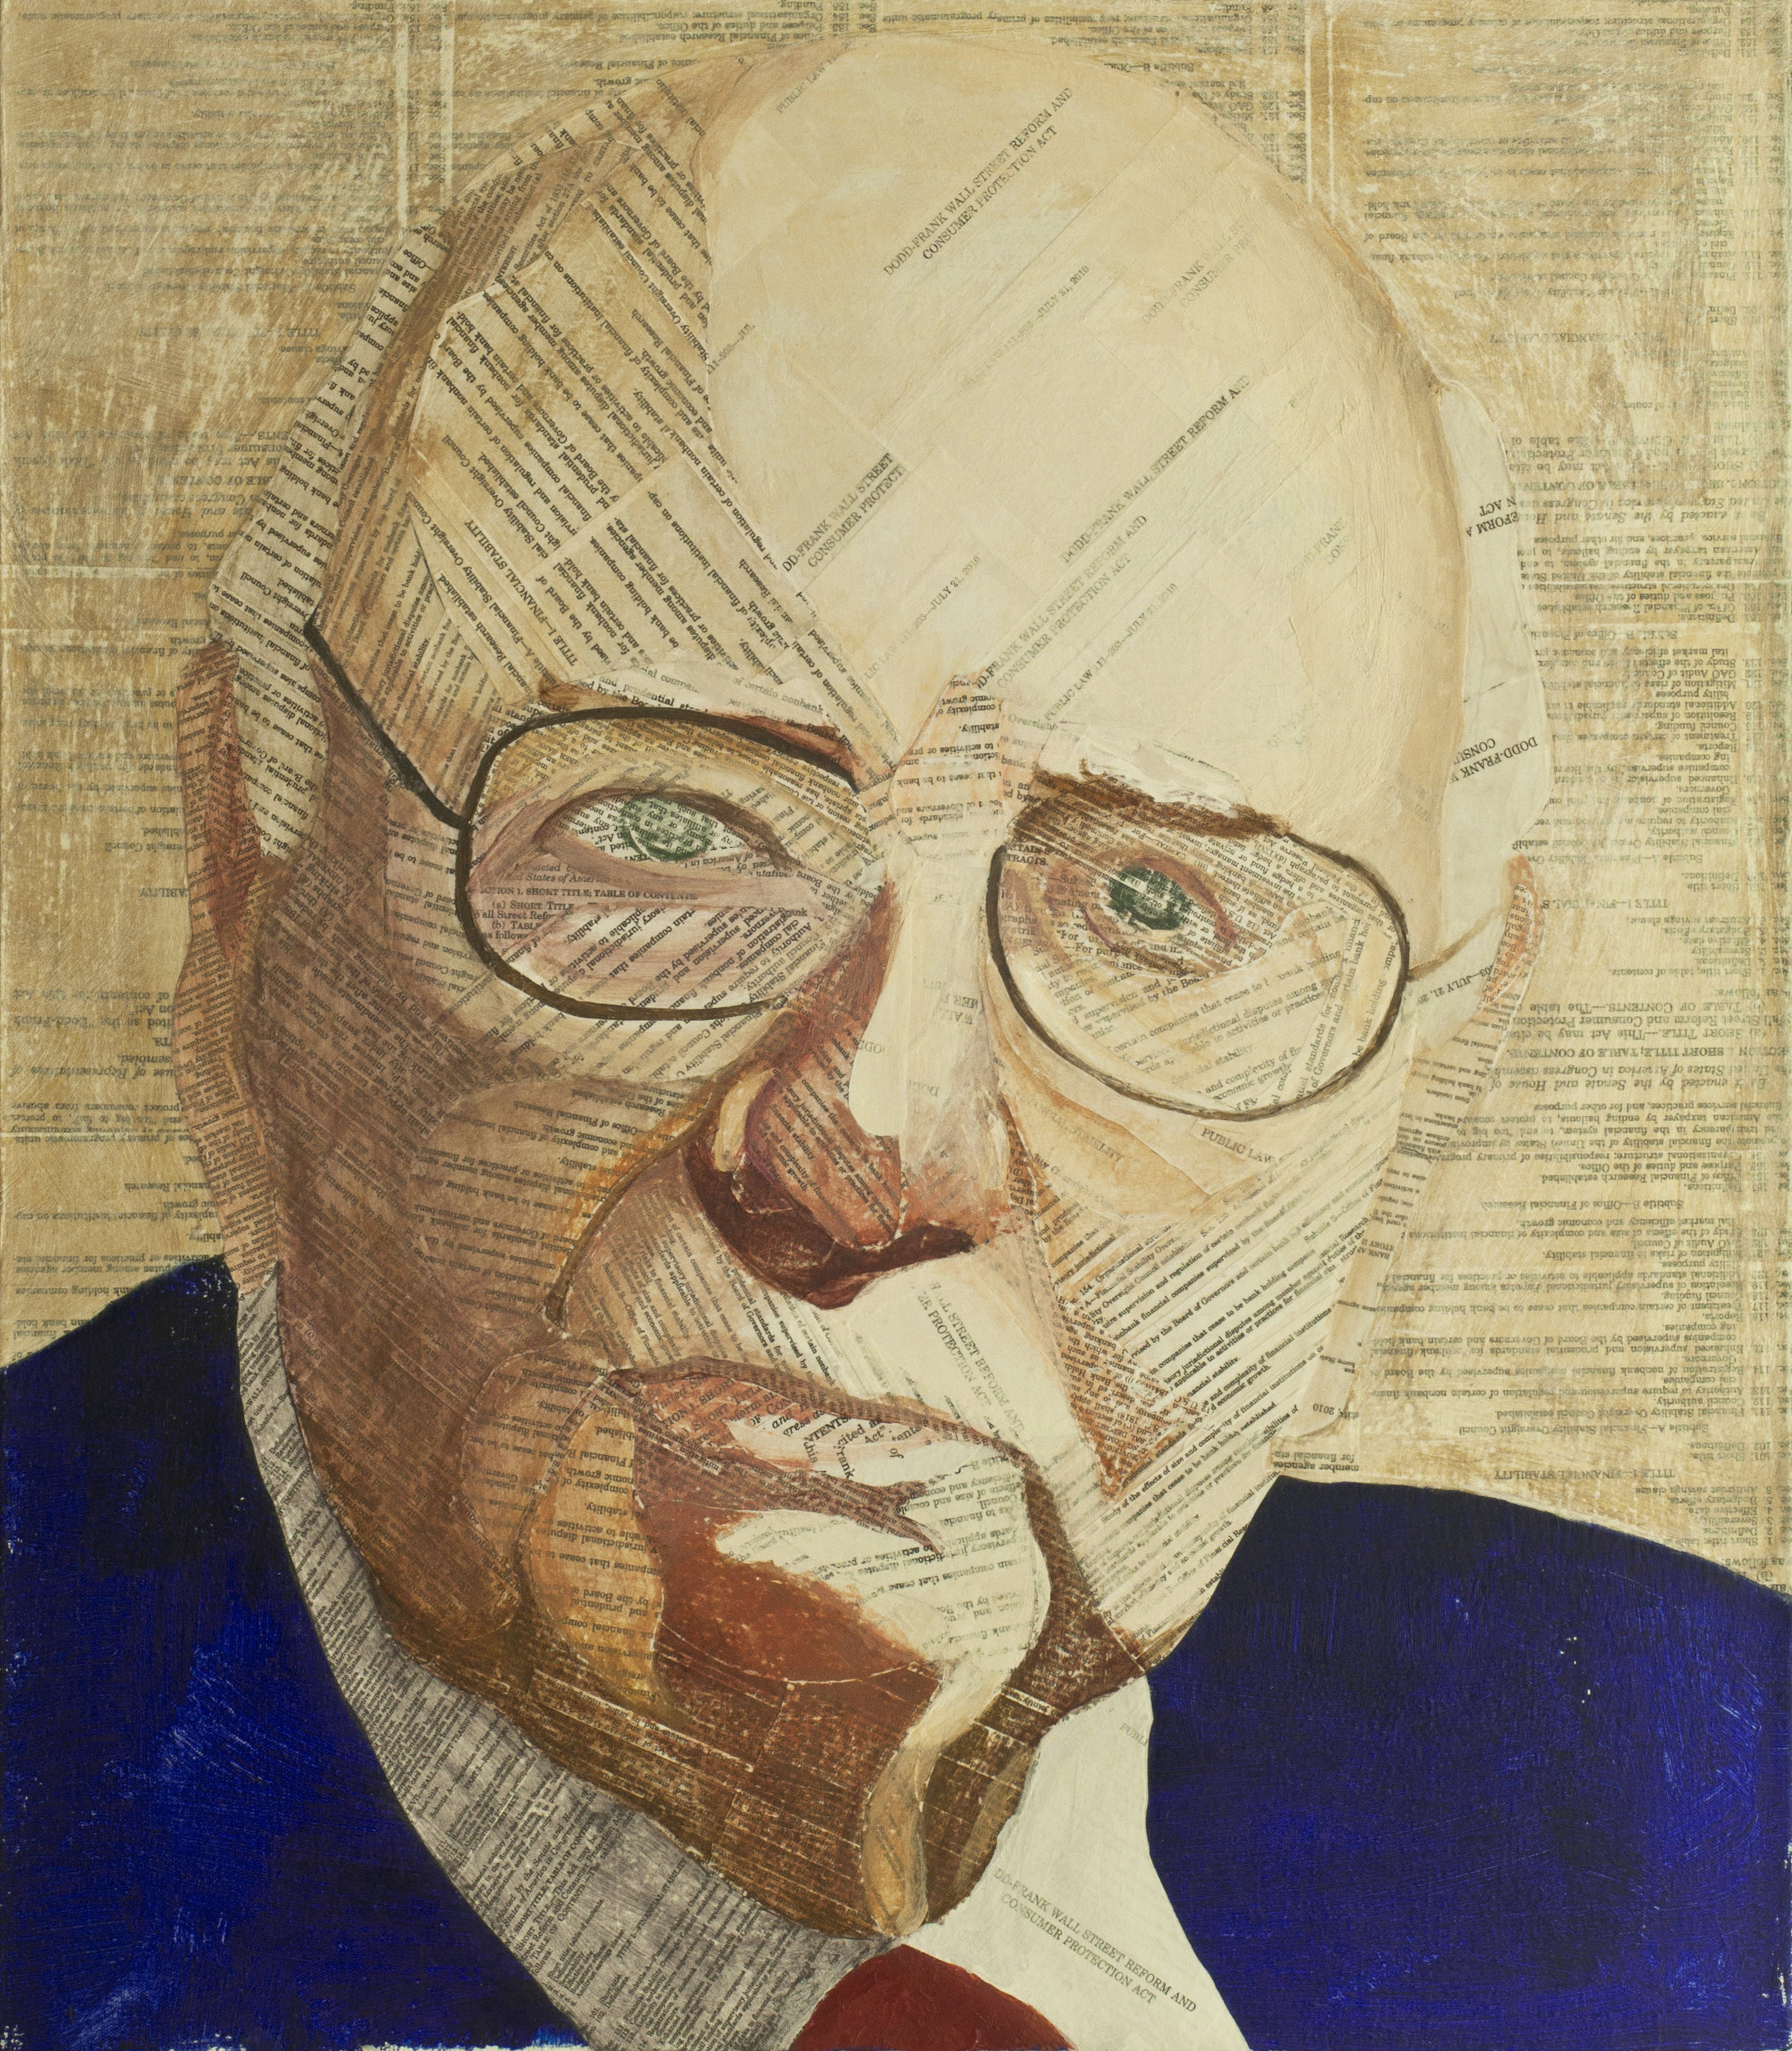 Volcker Rules  Pencil, collage material from the Volcker Rule section of the Dodd Frank Act and acrylic on canvas, 30 x 26 inches, 2014 Private collection, NYC  For a commissioned portrait of Paul Volcker I used the Volcker Act section of the Dodd-Frank Act.